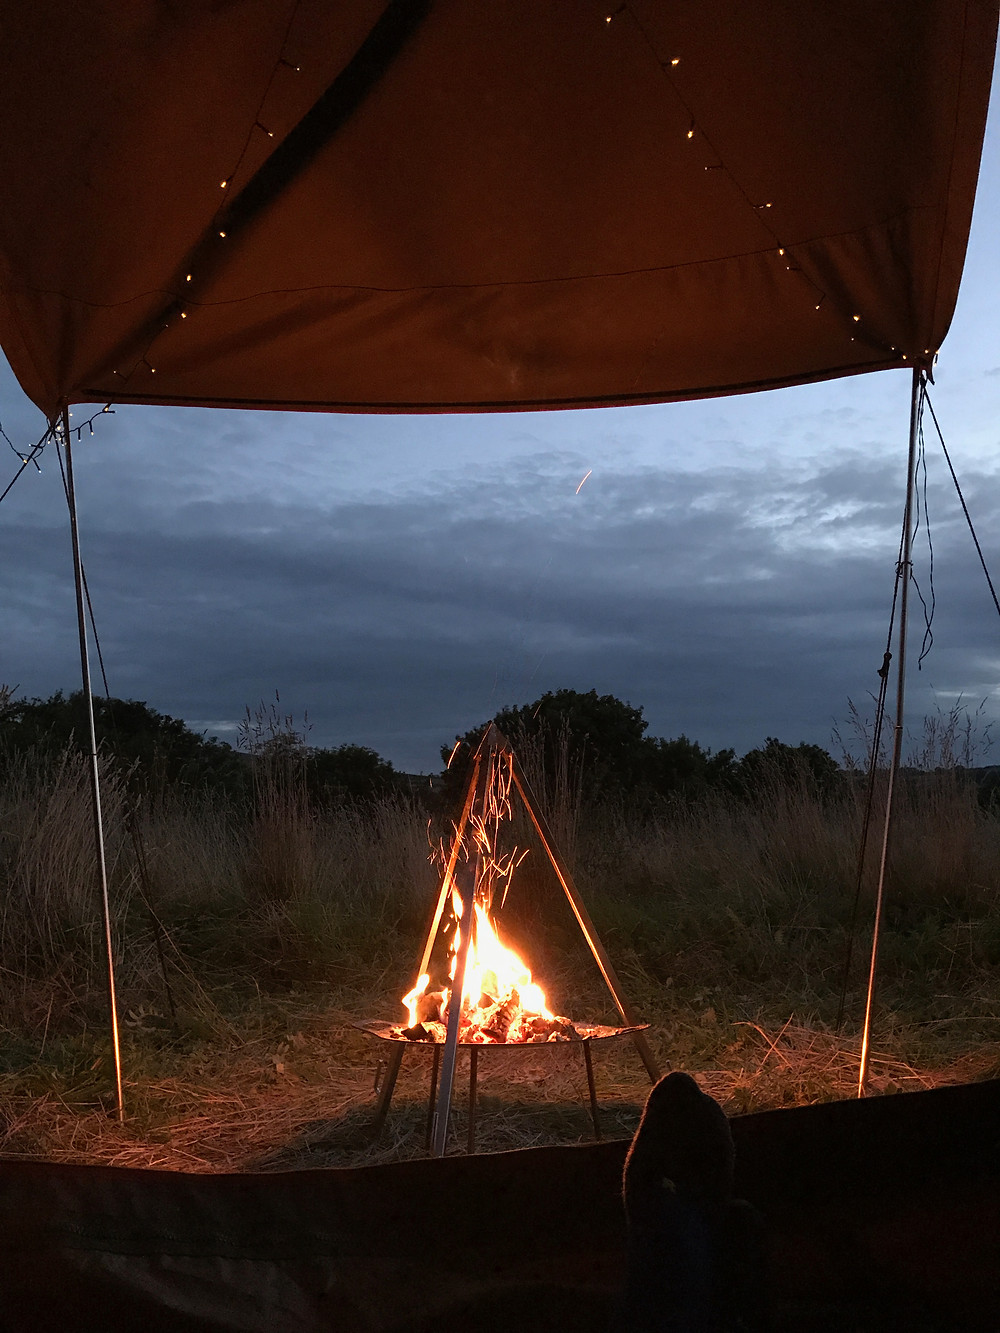 There is nothing better than winding down infront of the campfire. We absolutely love it when guests add their own special touches with fairy lights, bunting etc!